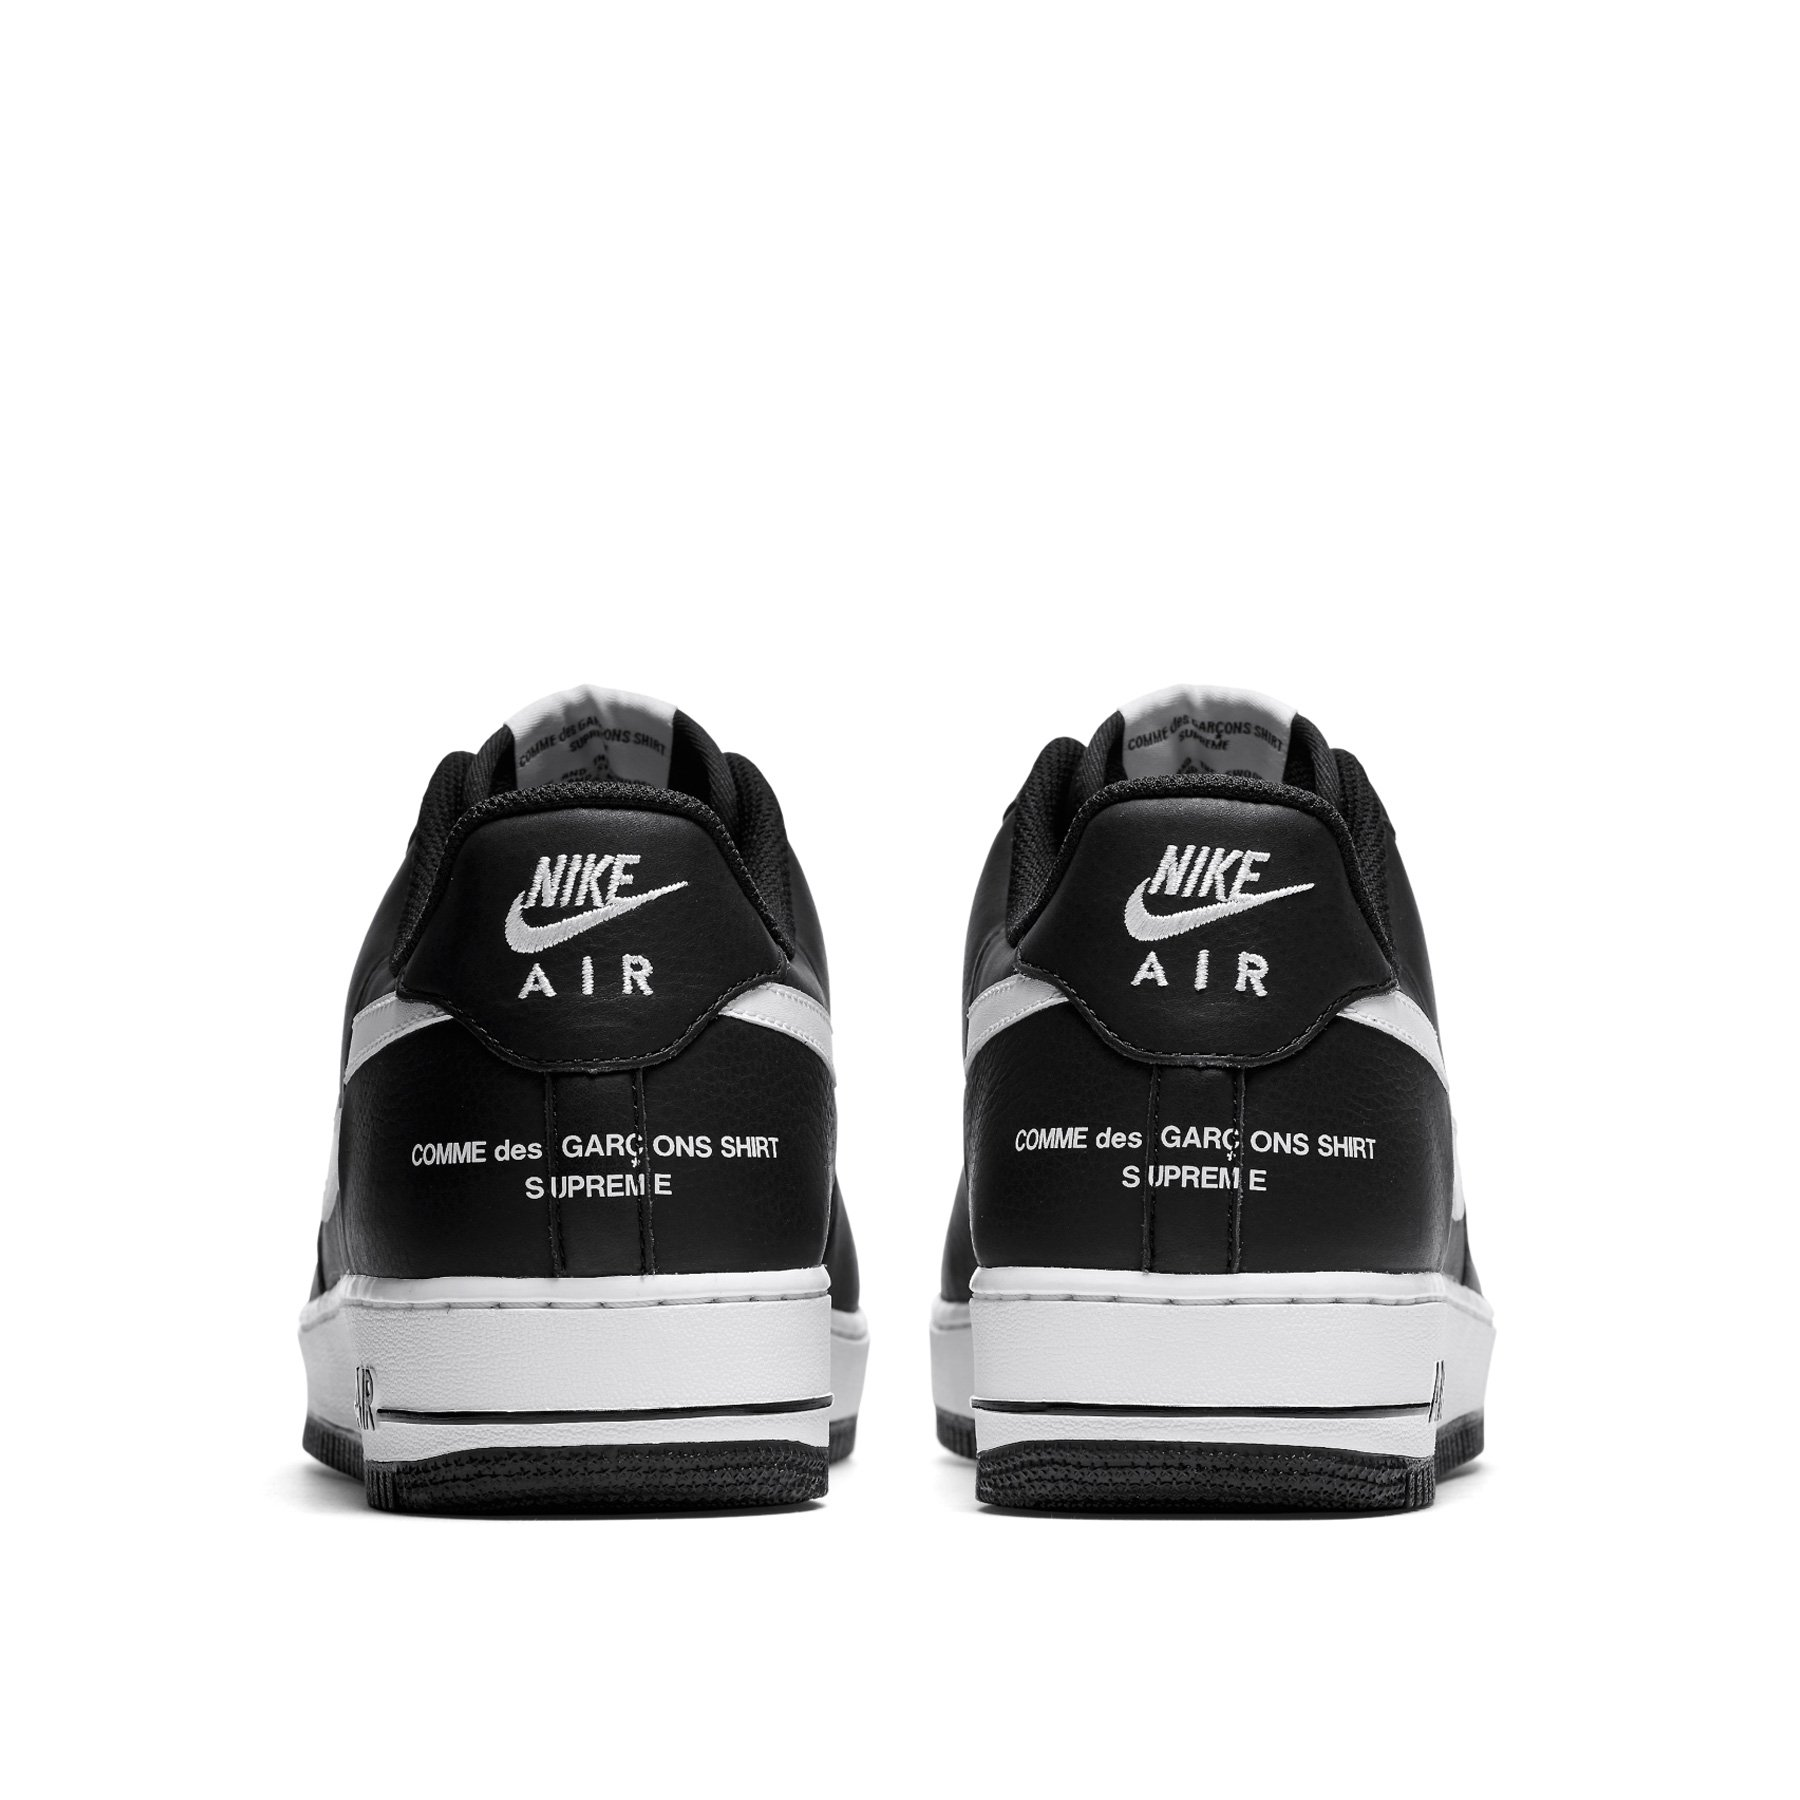 15a9b7e6f8 Very Goods | Comme des Garçons SHIRT/Supreme/Nike Air Force 1 Low (Black/ White) – Dover Street Market NY